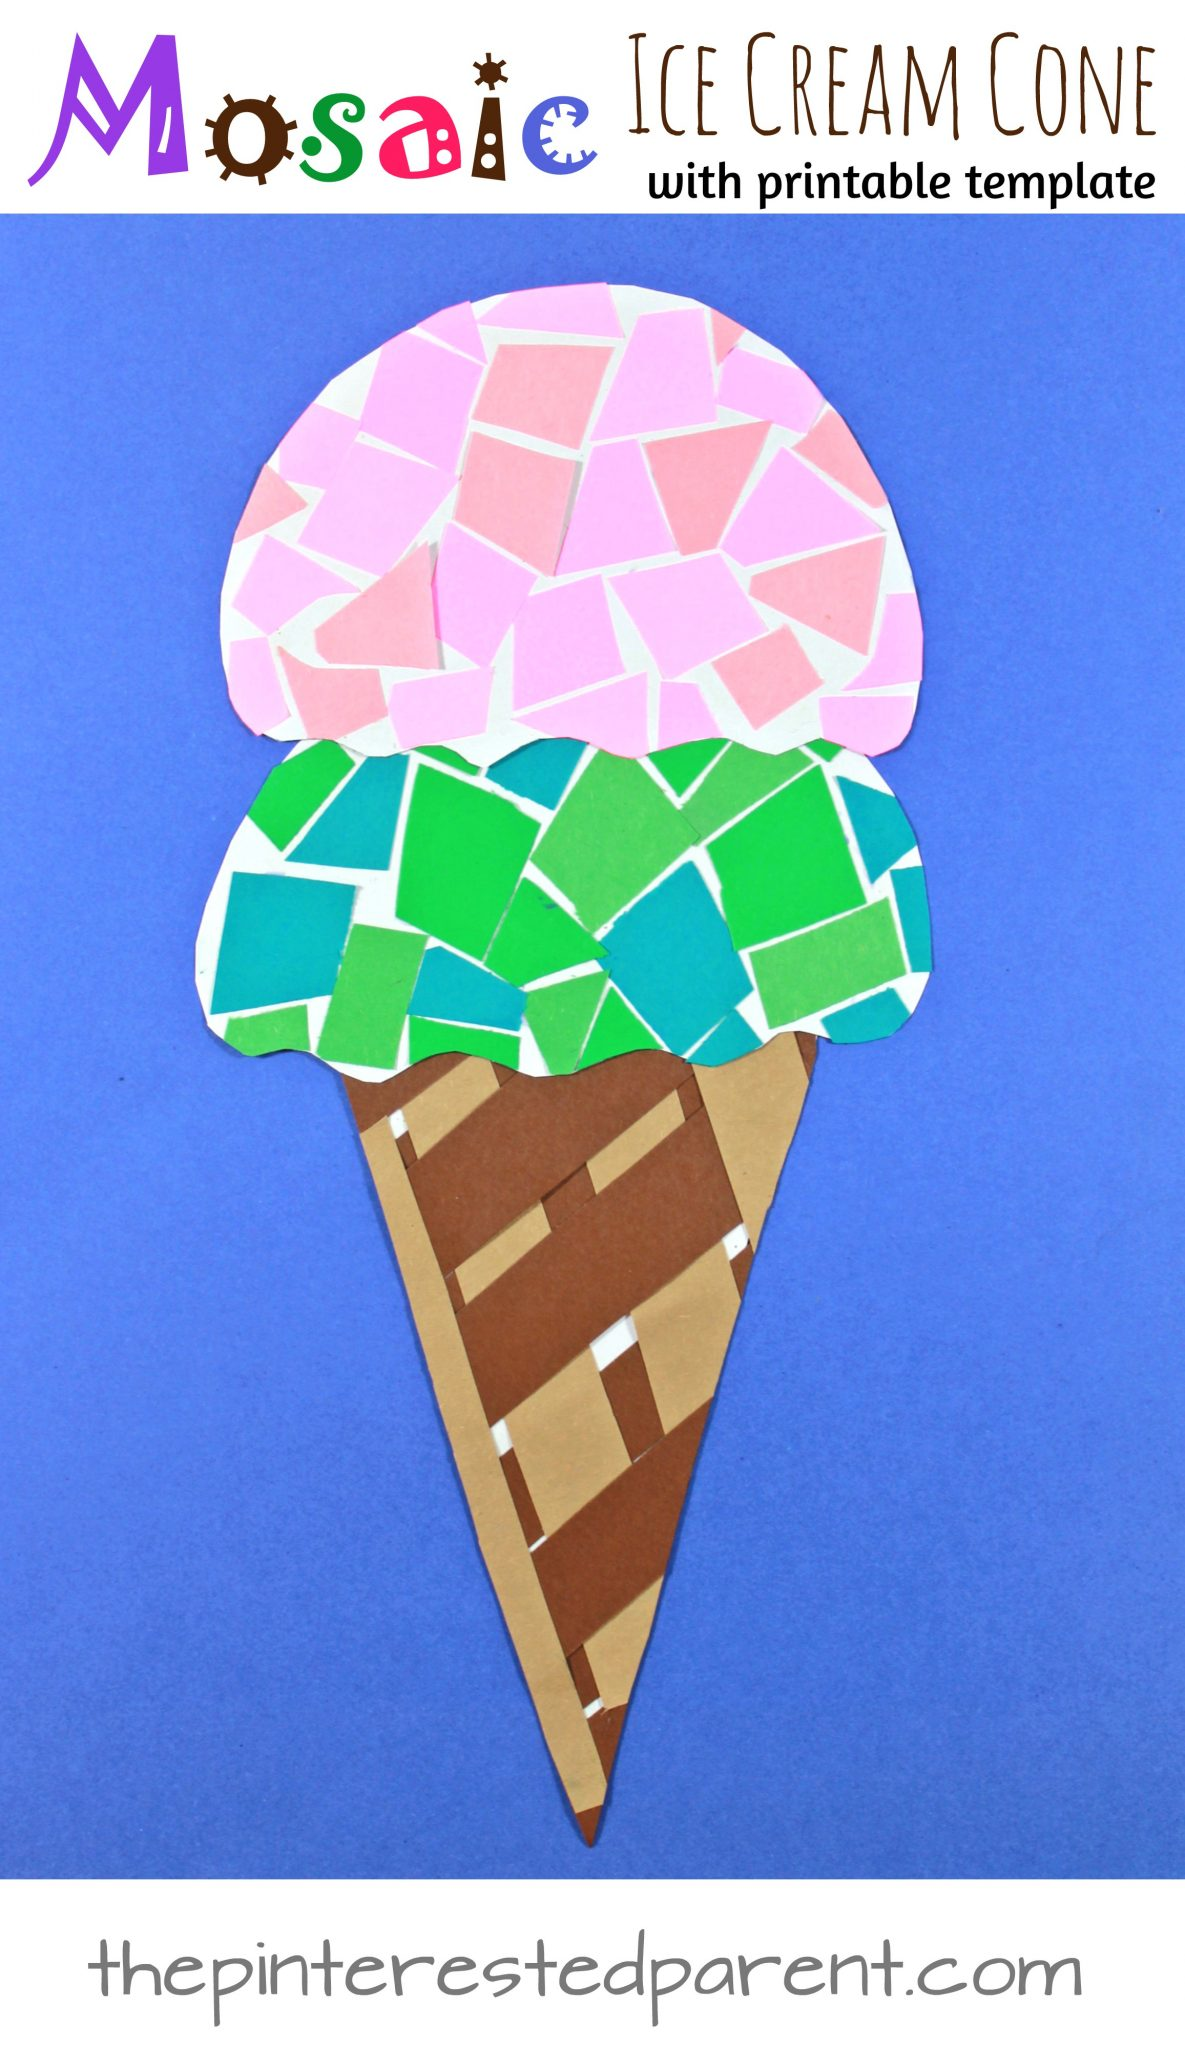 image regarding Ice Cream Template Printable called Printable Paper Mosaic Ice Product Cone The Pinterested Mum or dad